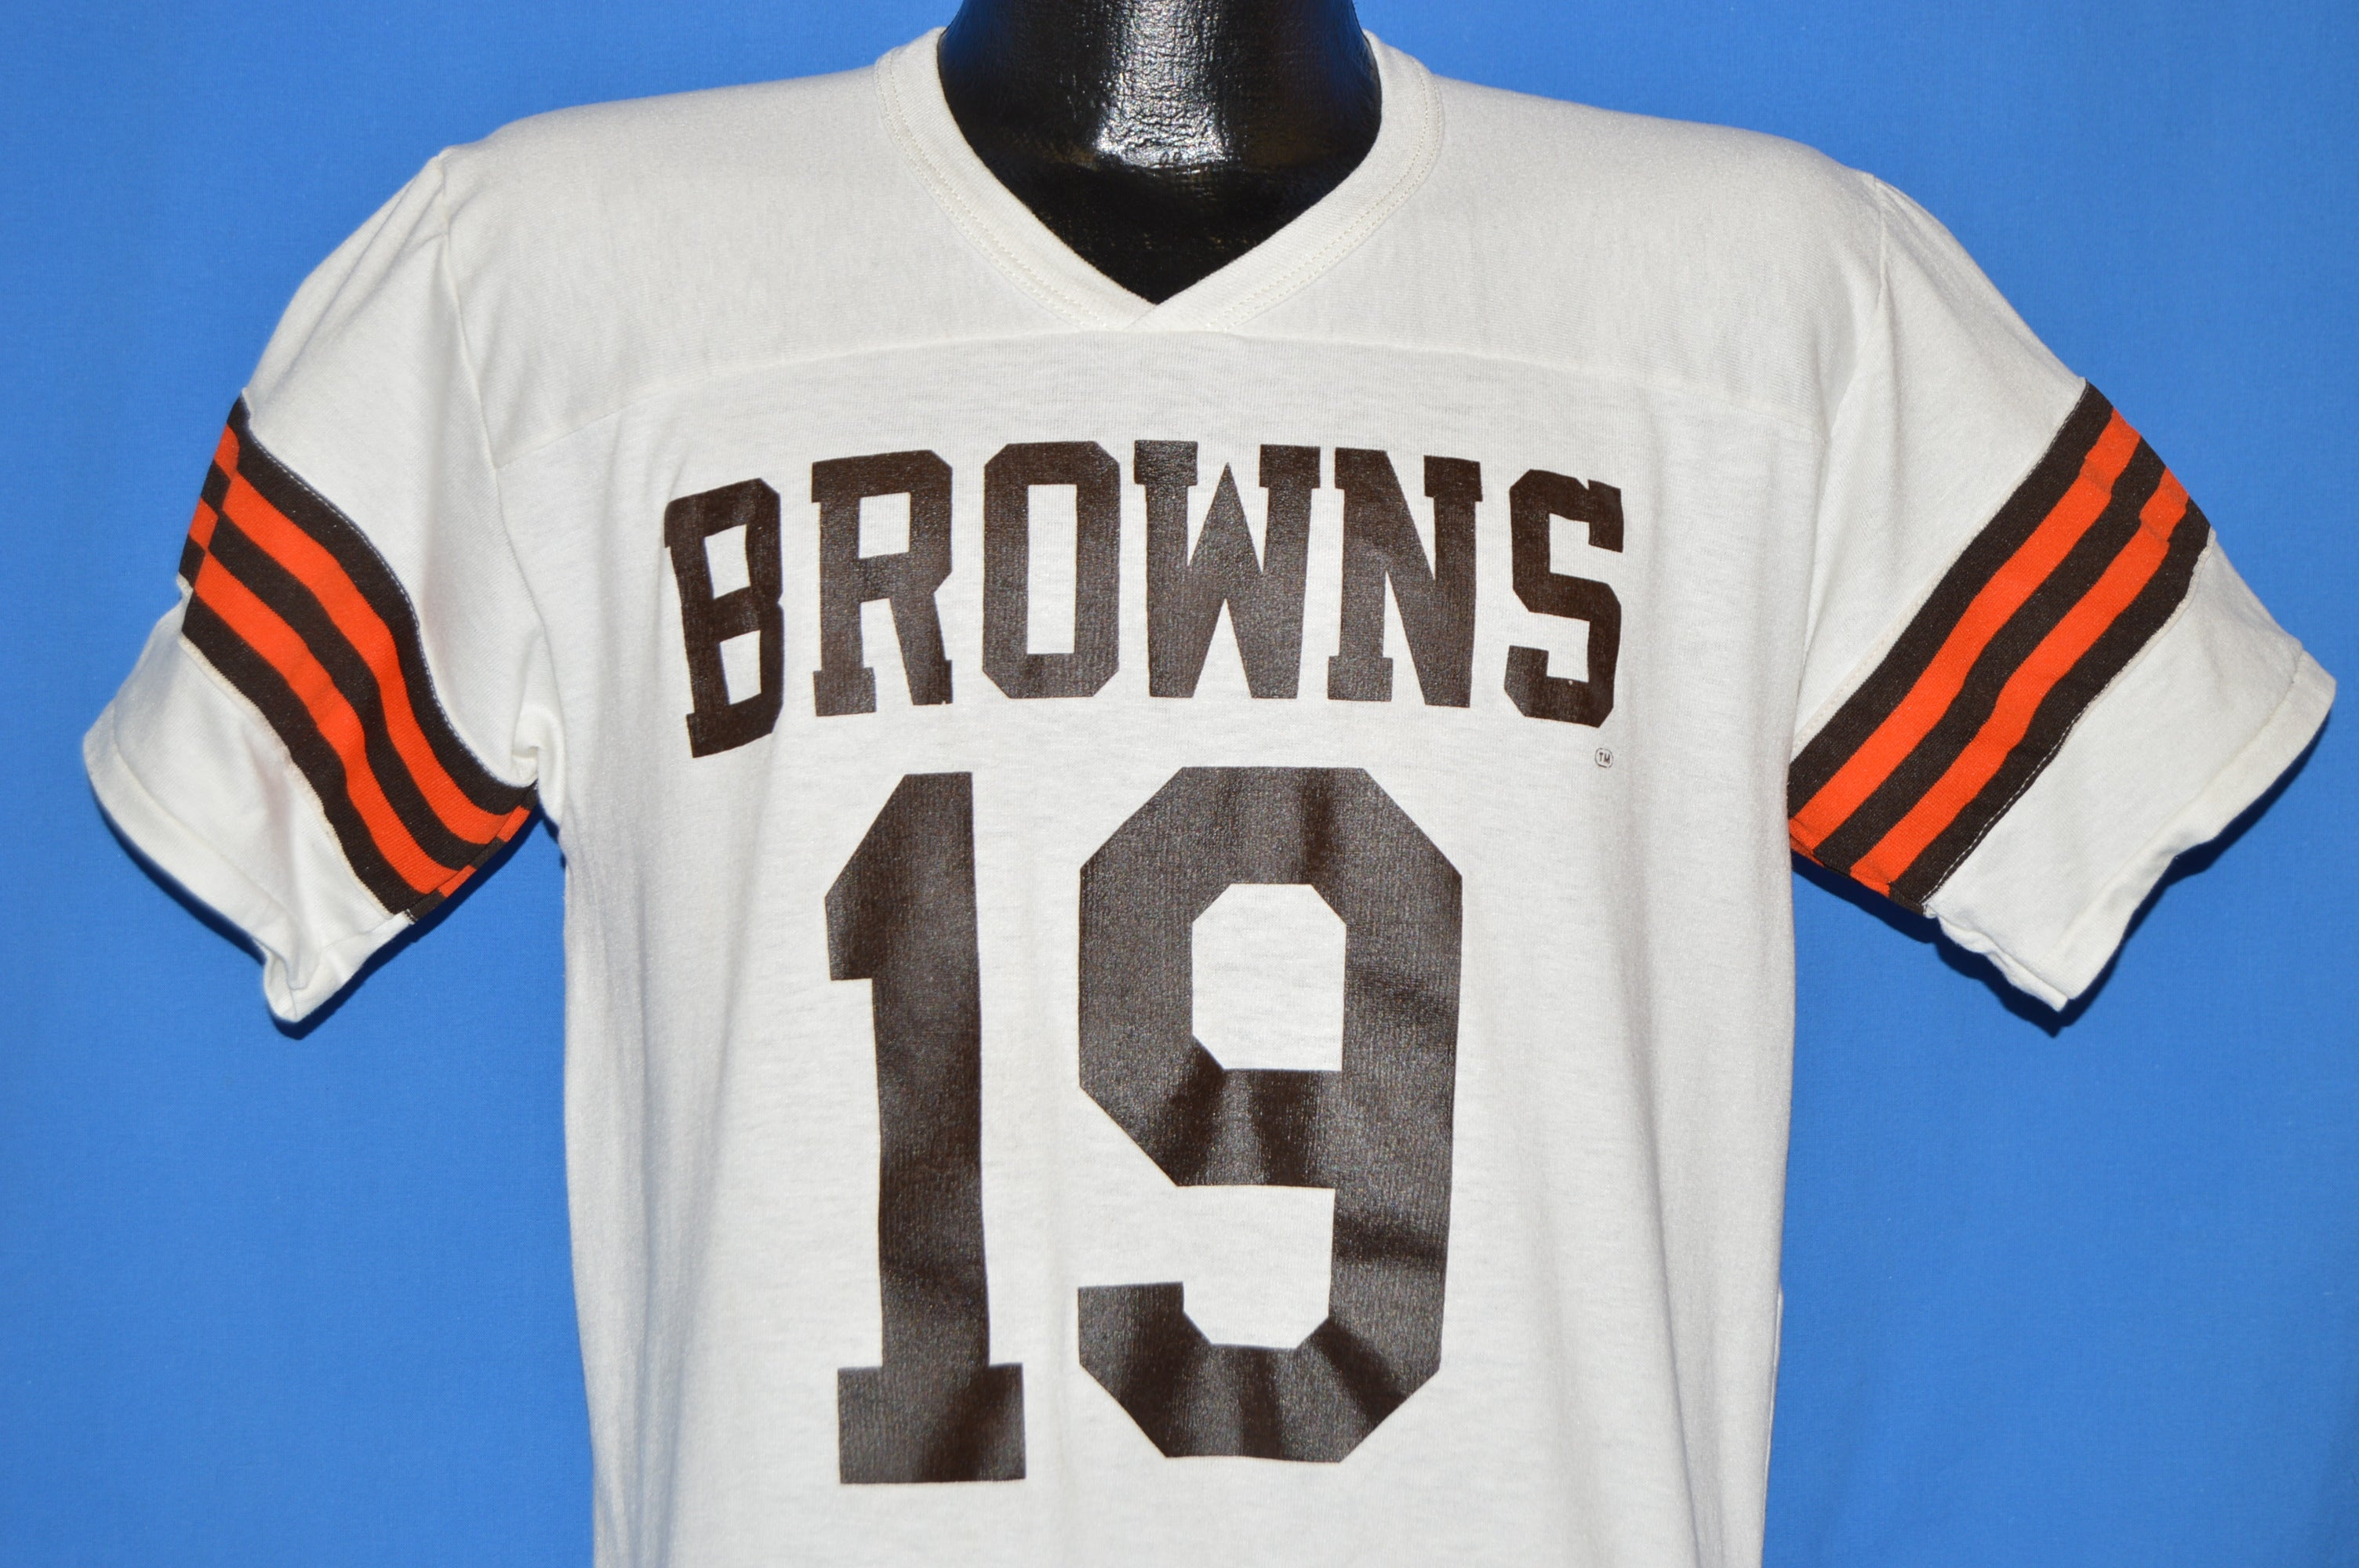 new products 882a8 99318 ... 80s Cleveland Browns 19 Bernie Kosar Jersey t-shirt Medium NFL Nike ...